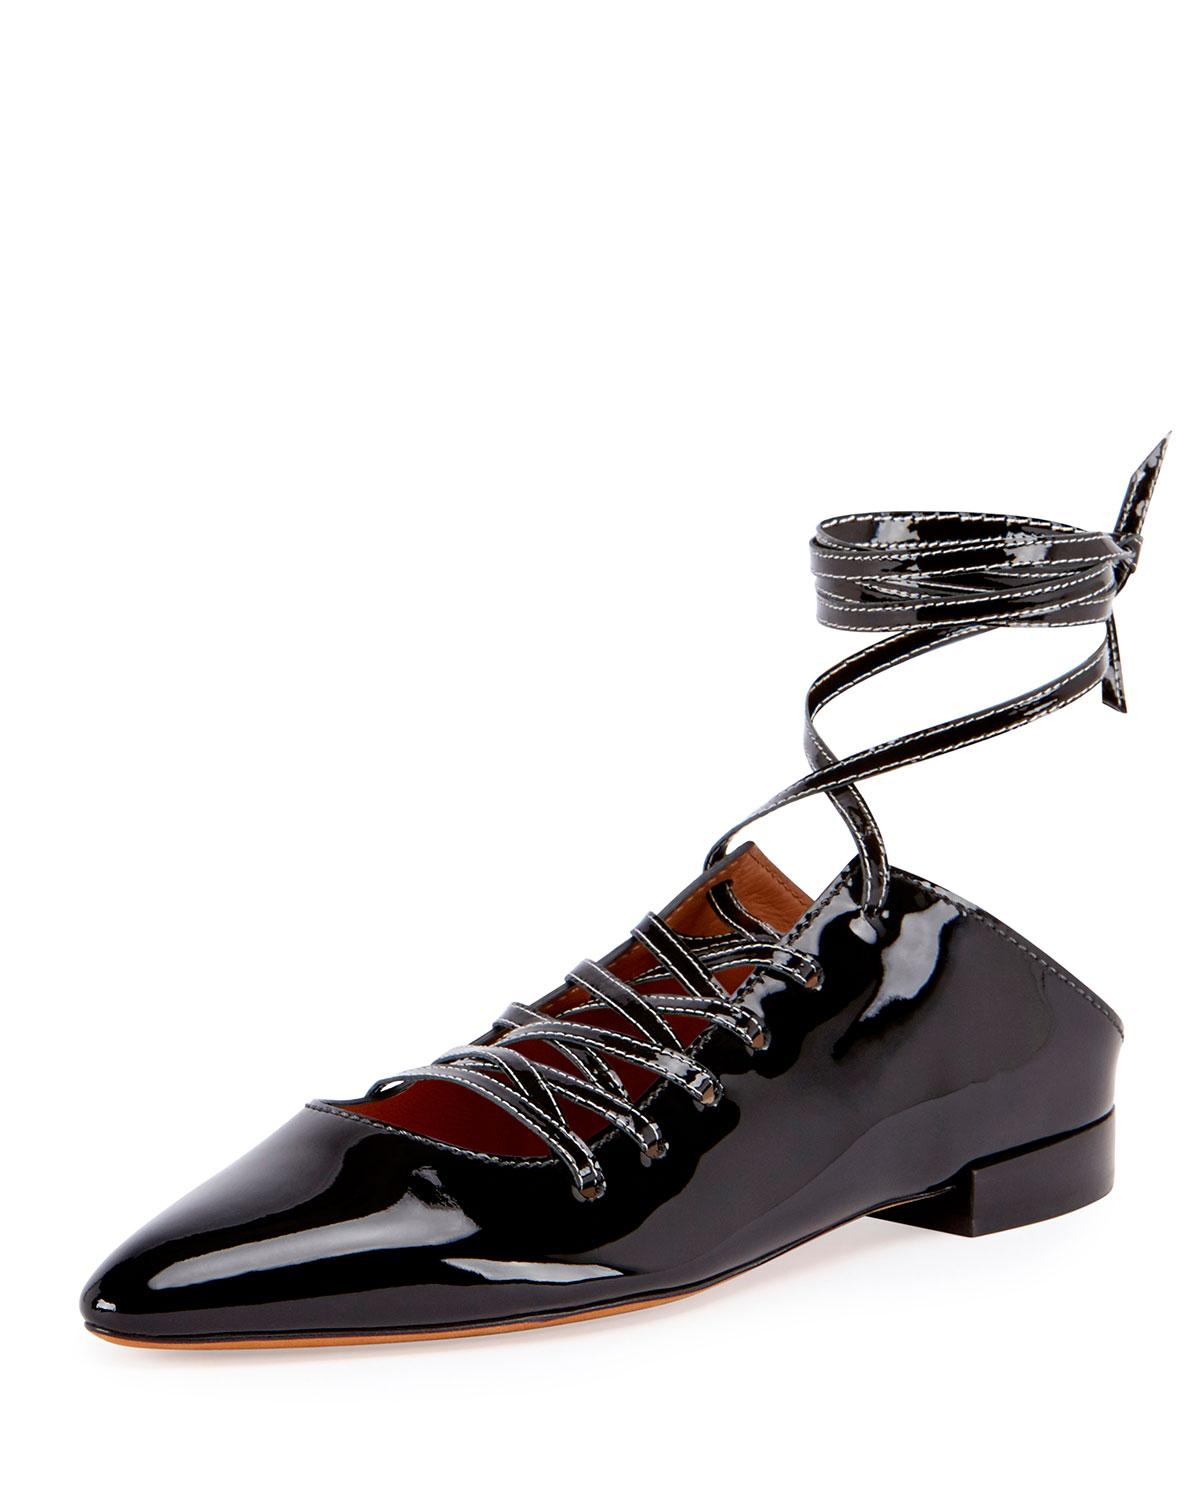 givenchy patent lace up ballerina flat in black lyst